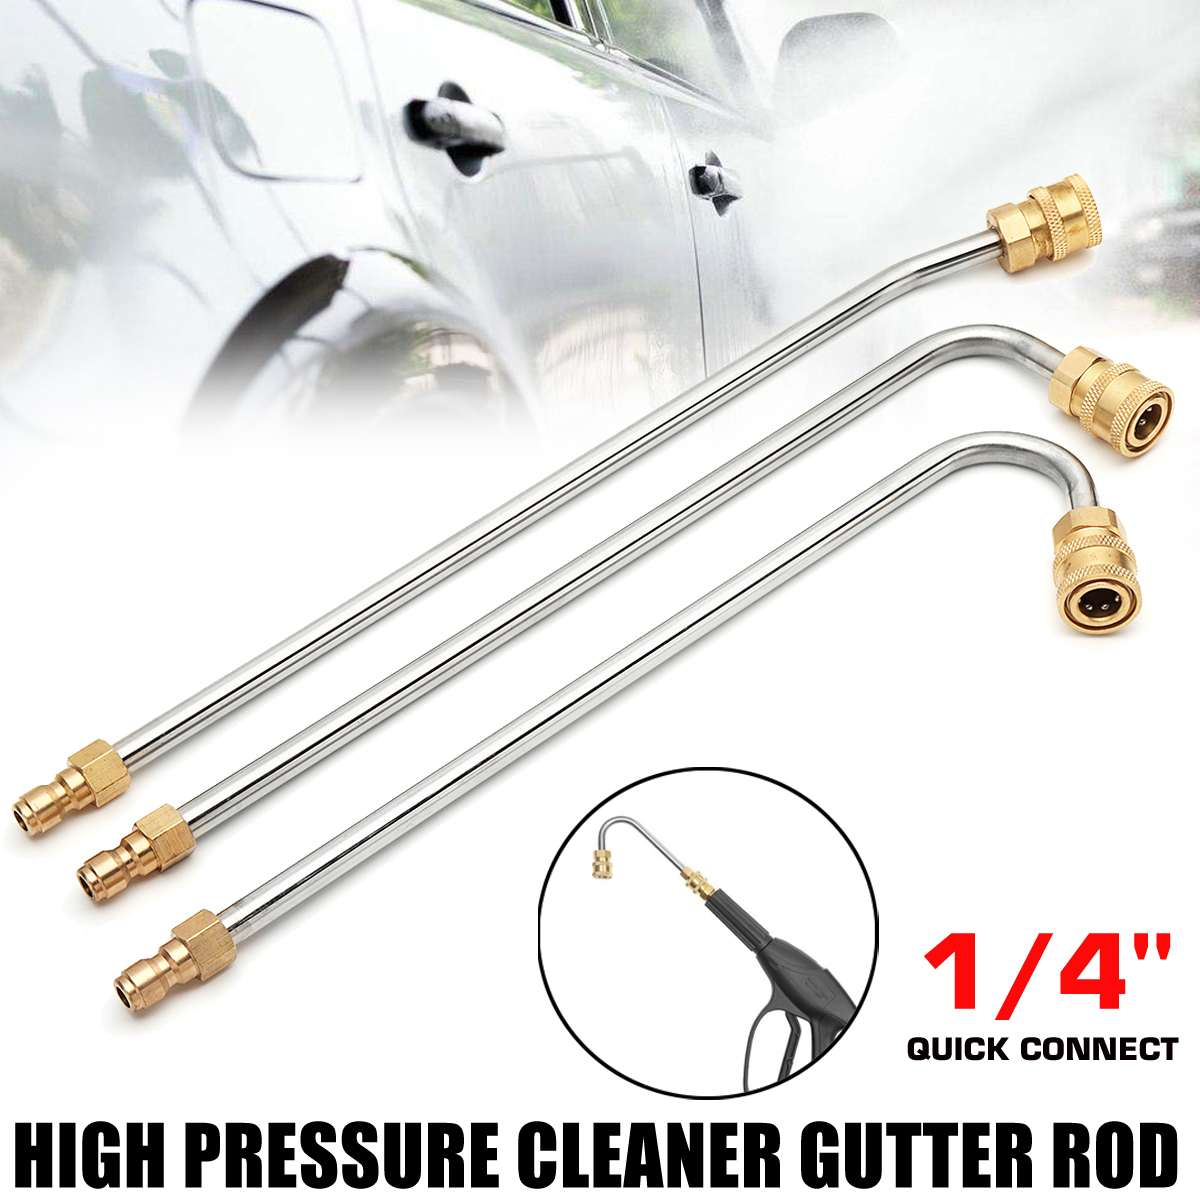 New U Shape / 30/90 gradi Pressure Washer Gutter Rod Cleaner Attachment Lance Wand 1/4 Inch Quick Connect